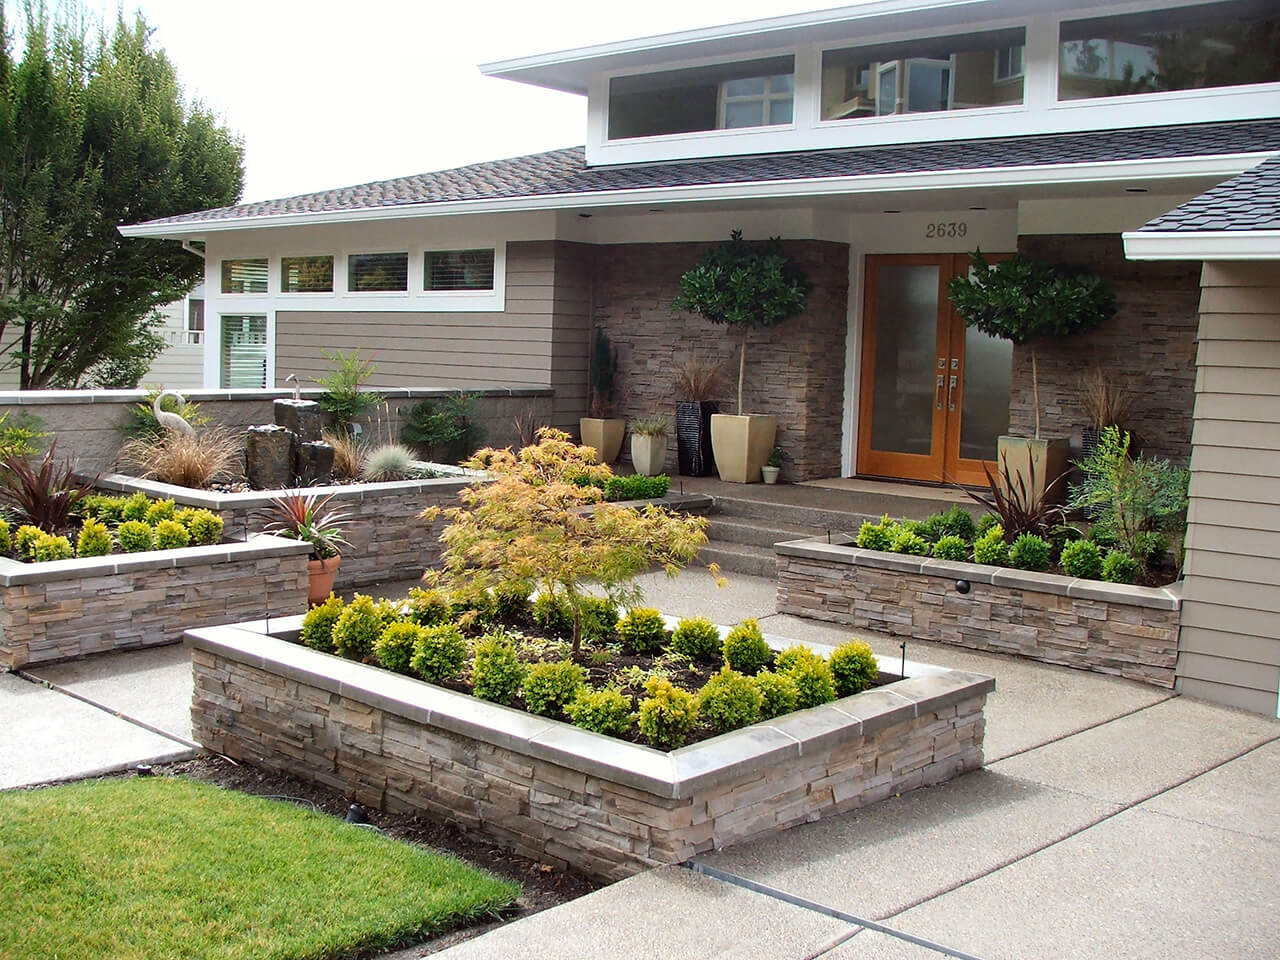 50 best front yard landscaping ideas and garden designs Small front lawn garden ideas